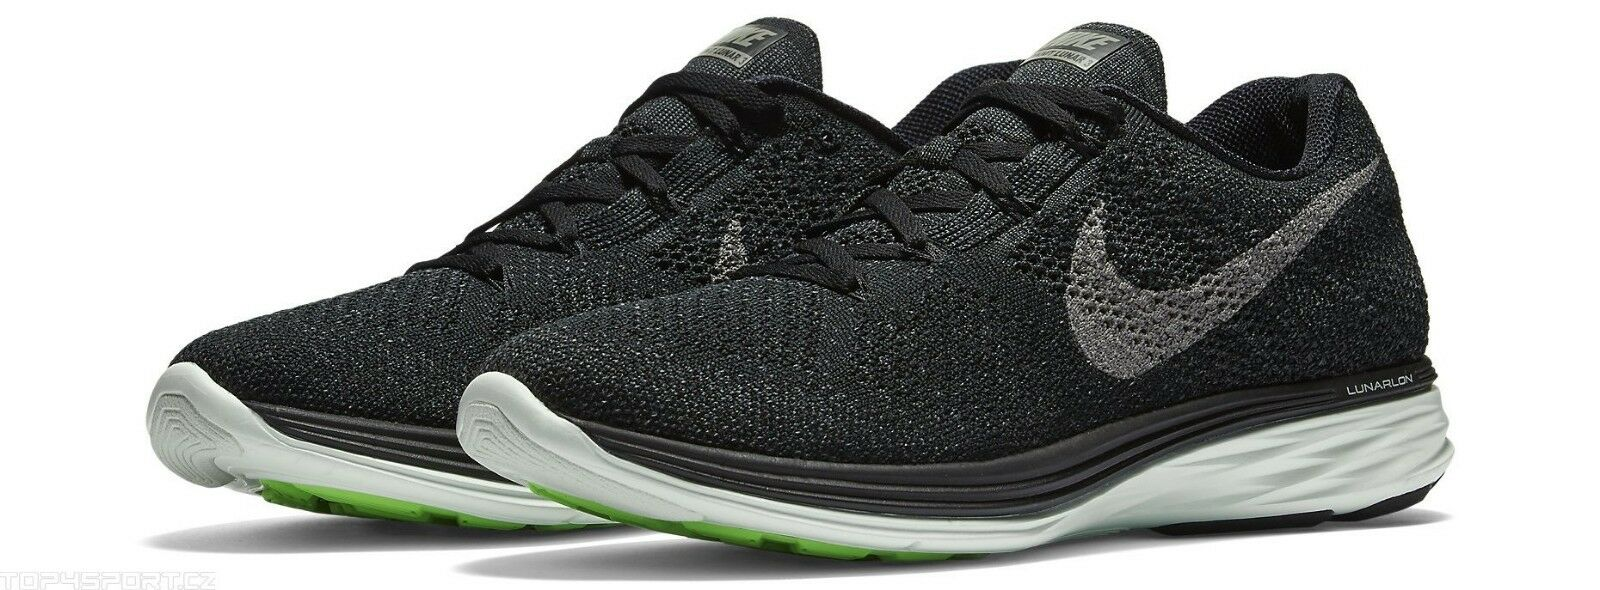 Mens Nike Flyknit Lunar 3 LB 826837 003 Black Metallic Size 11 VERY RARE